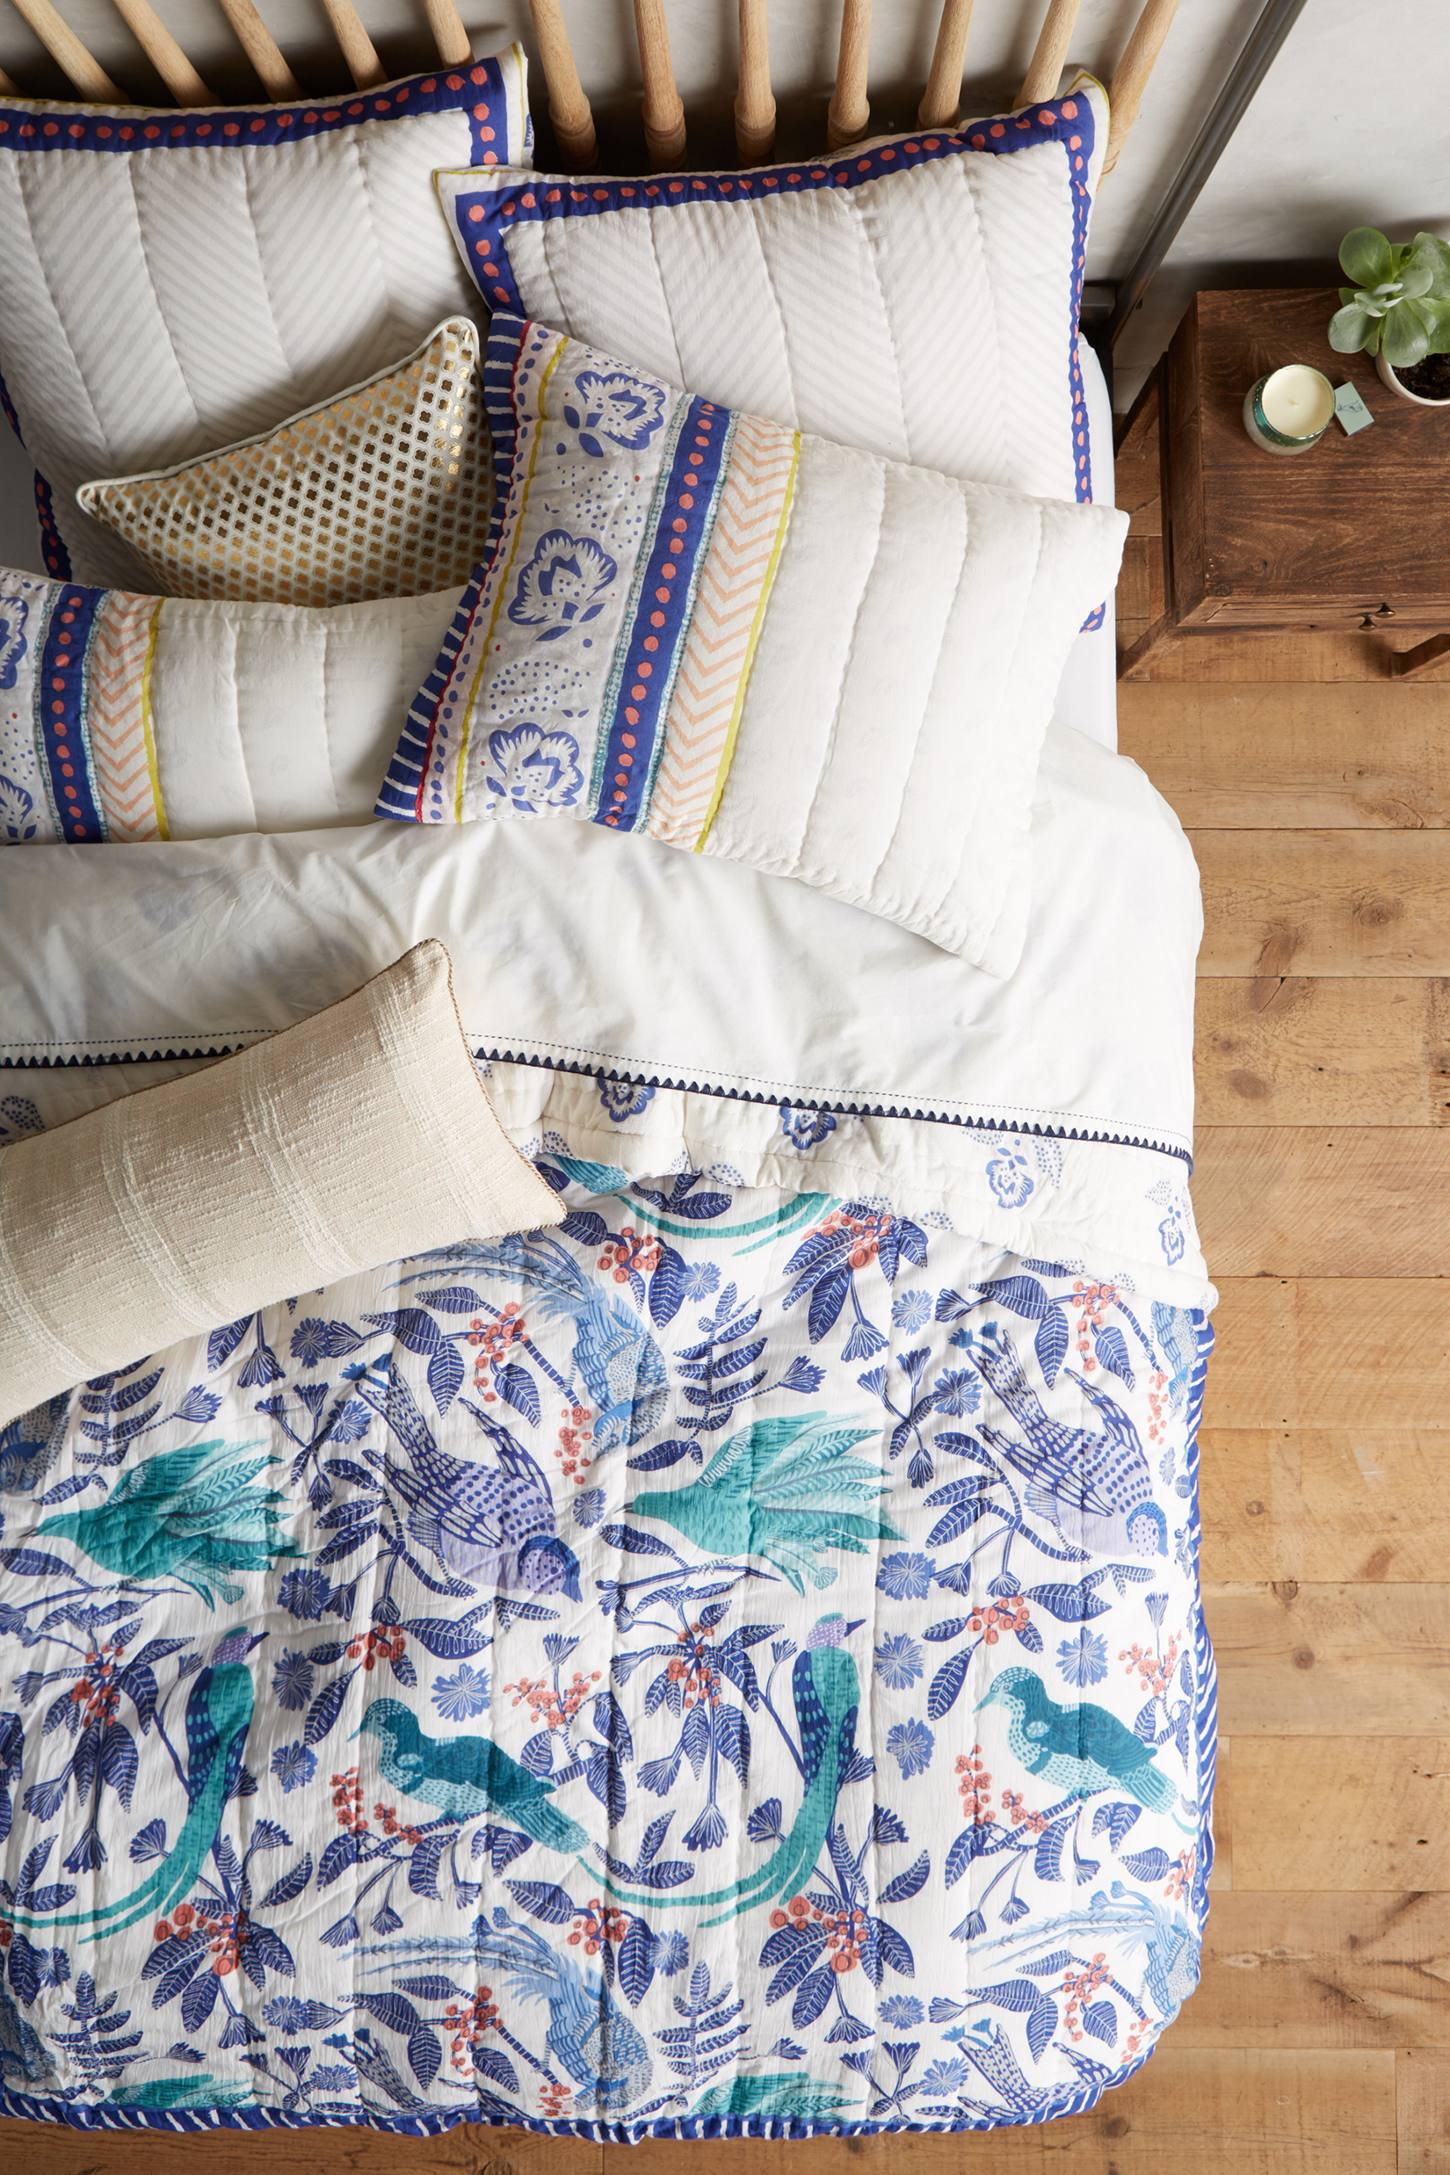 Anthropologie bedding - Anthropologie Bedding 38